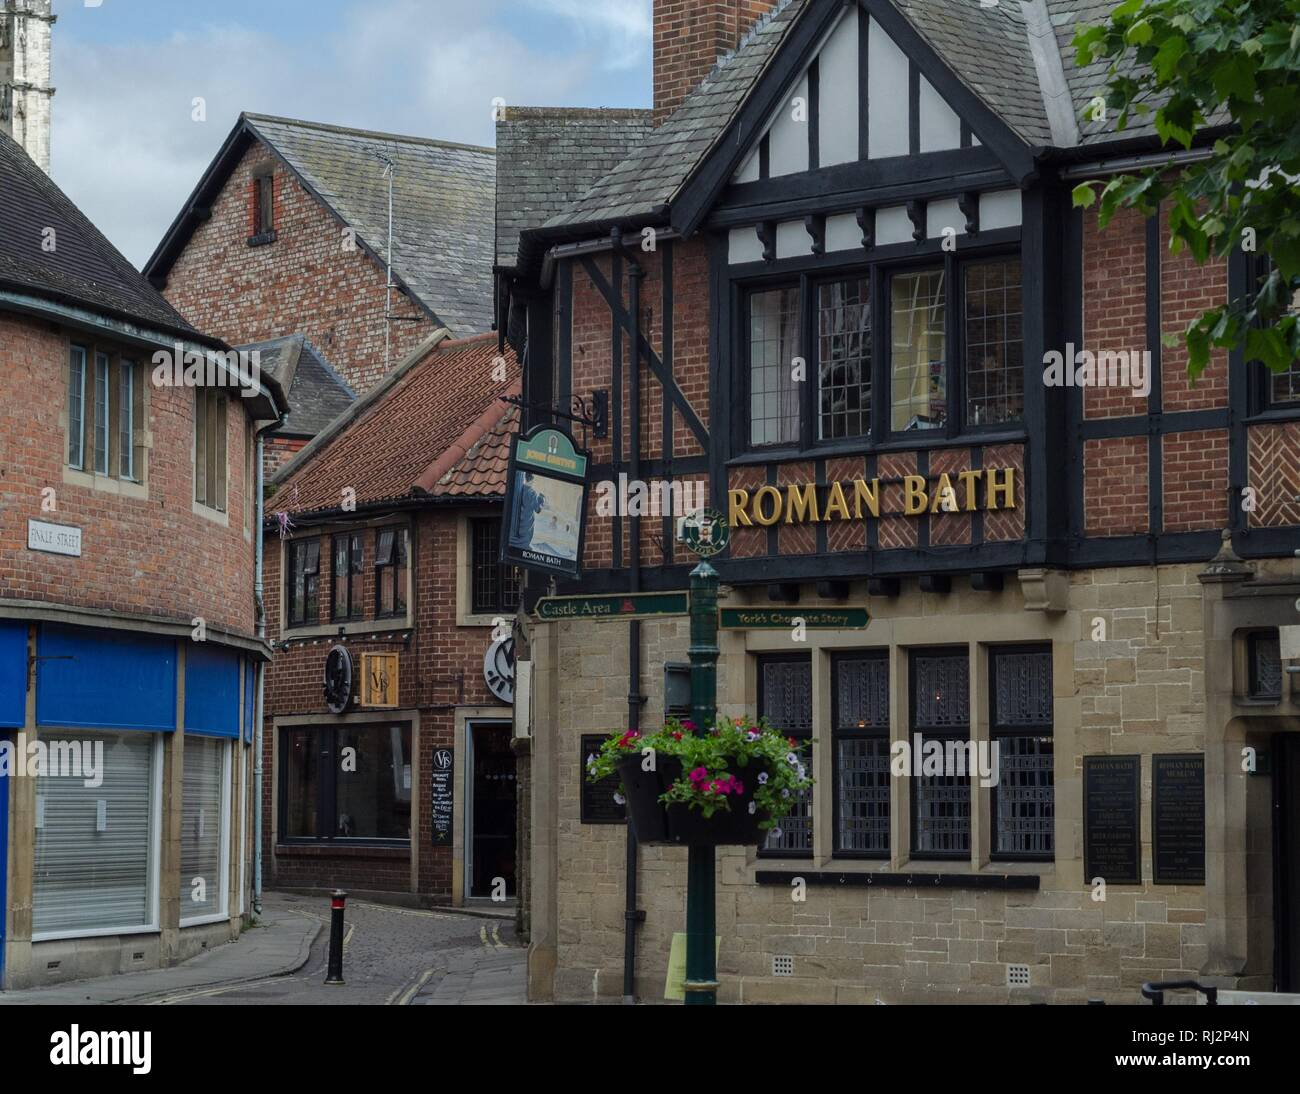 Medieval shops and stores near the Shambles Market in York, England. - Stock Image